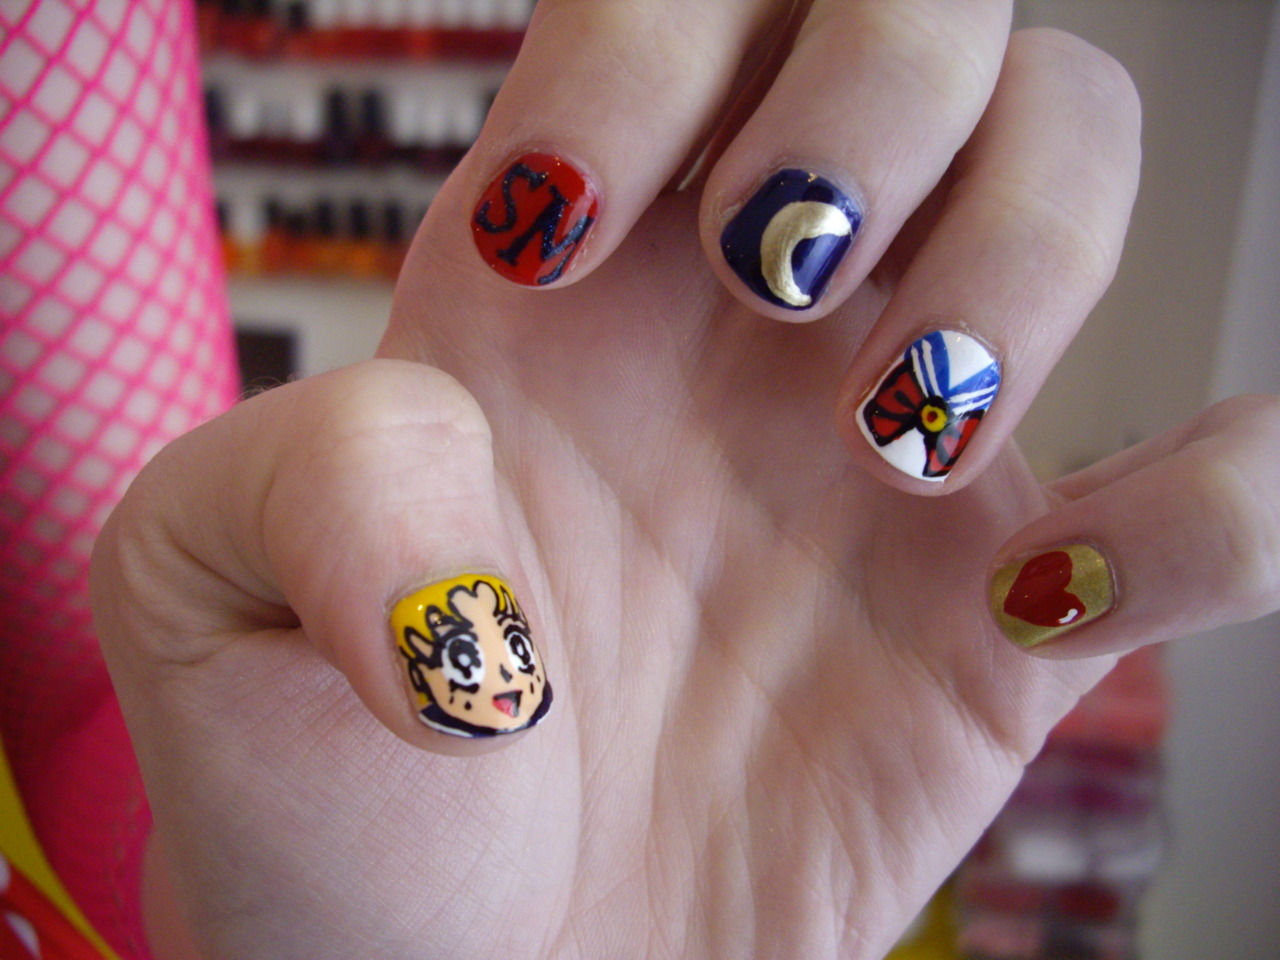 Nail Art Pictures: nail art salon games kids